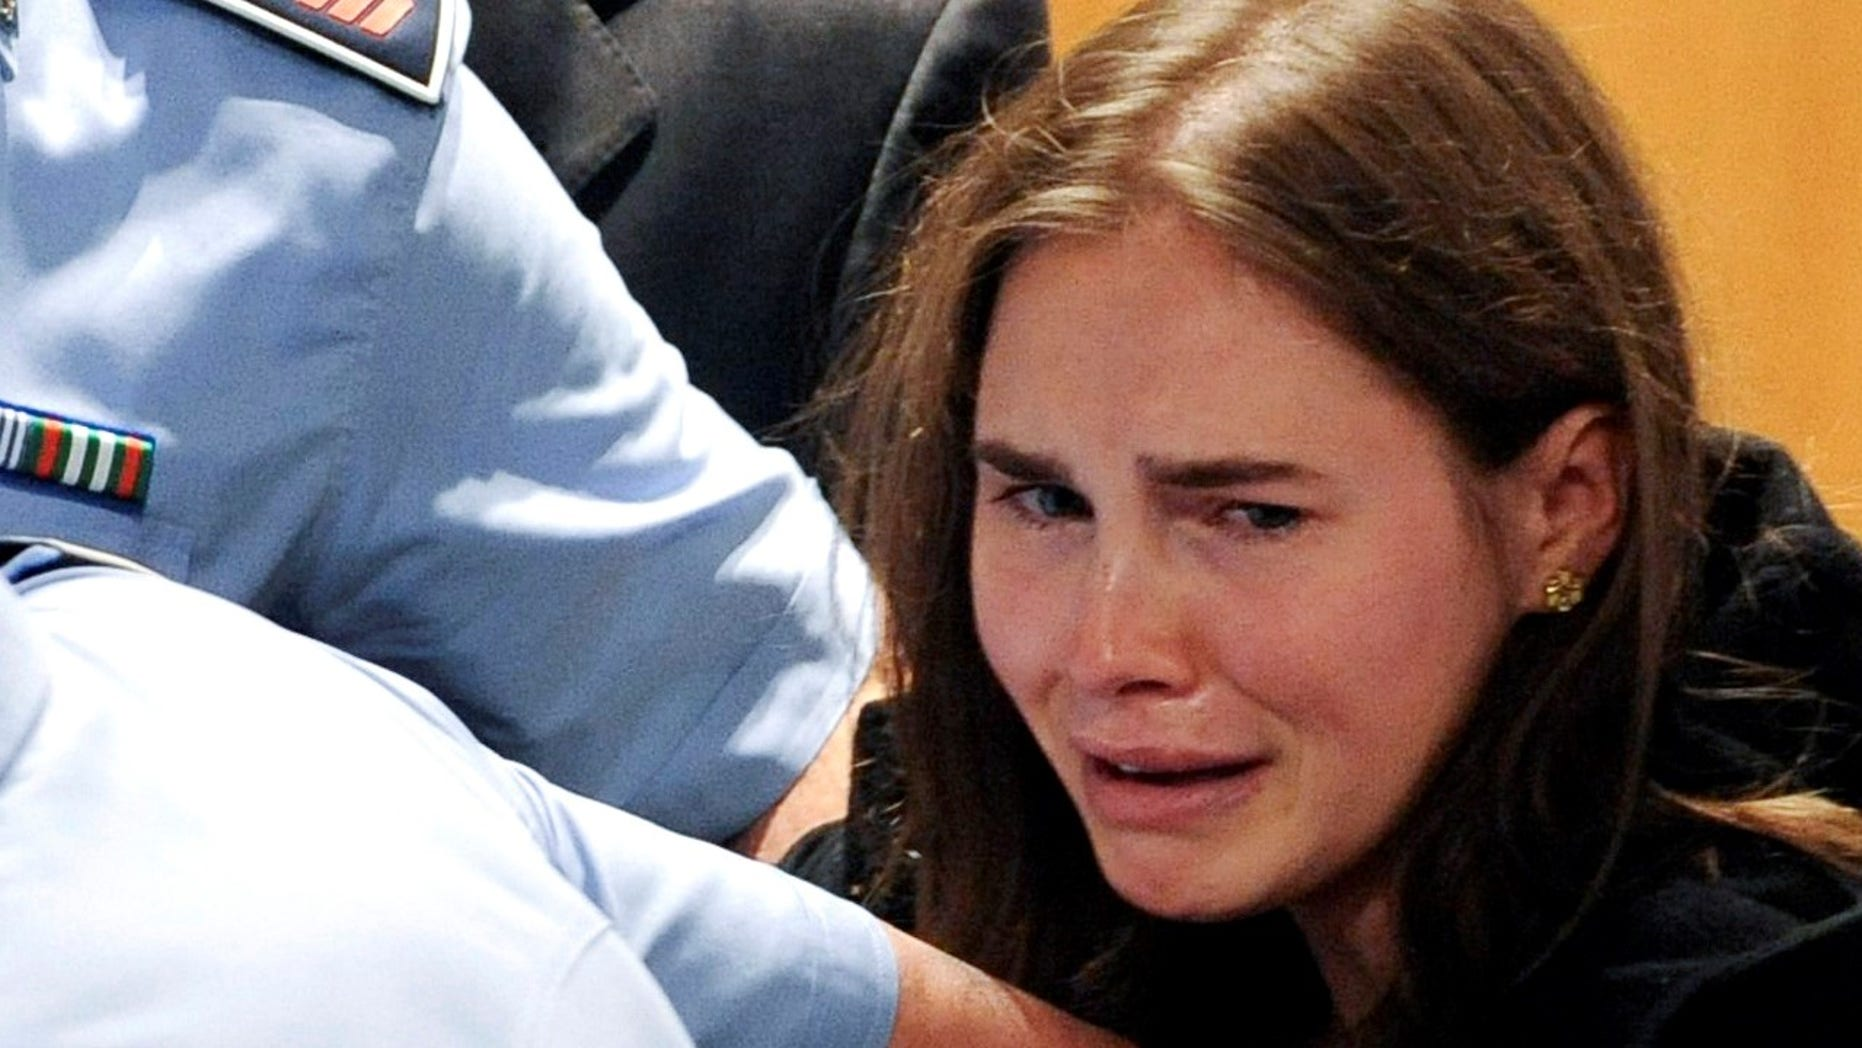 """Amanda Knox was dubbed """"Foxy Knoxy"""" during her trial for the 2007 murder of her roommate."""